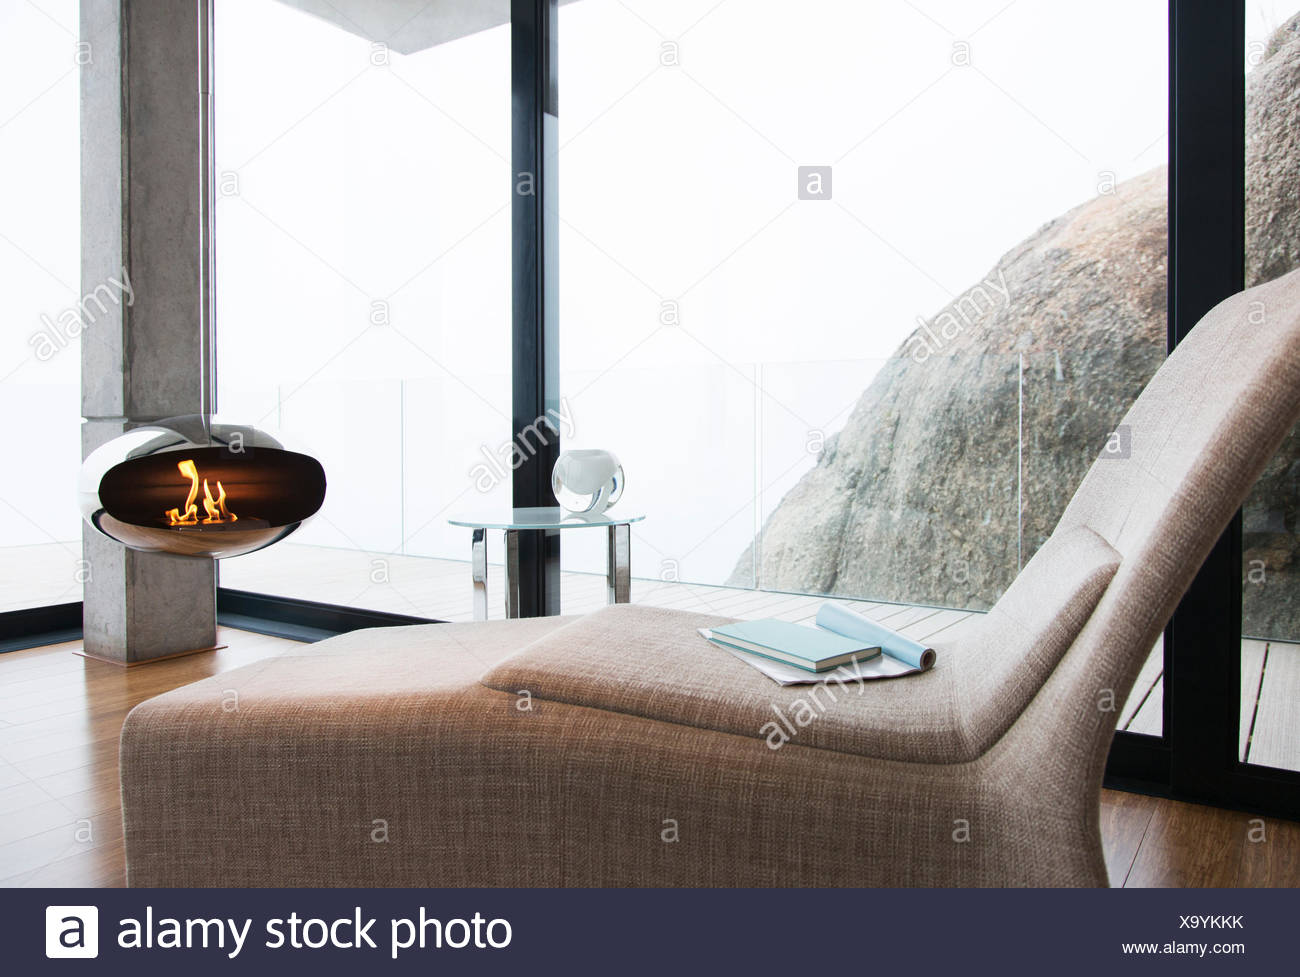 Stone Fireplace Stock Photos & Stone Fireplace Stock Images - Alamy